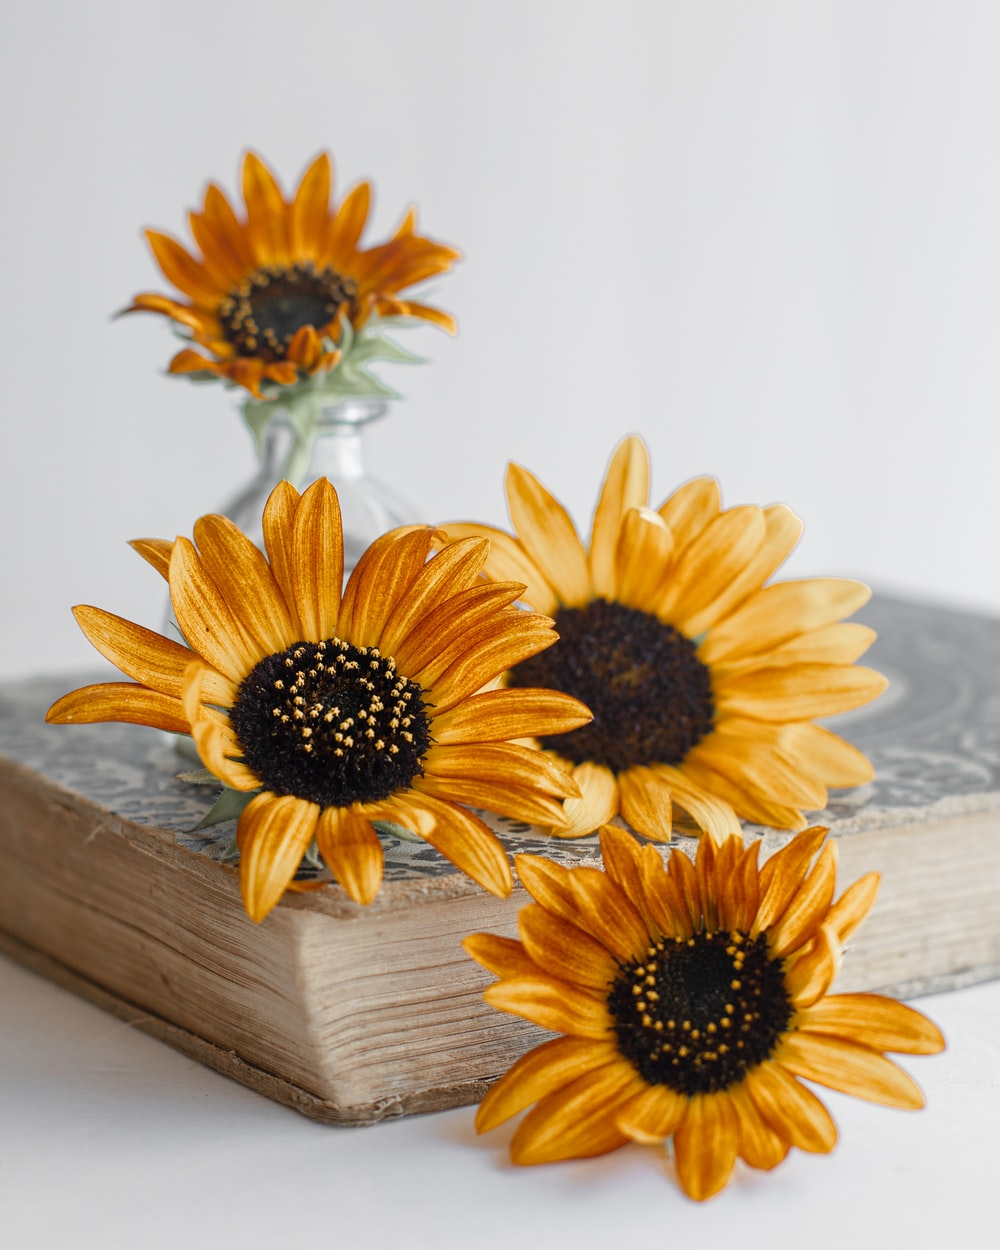 yellow sunflower on brown wooden table